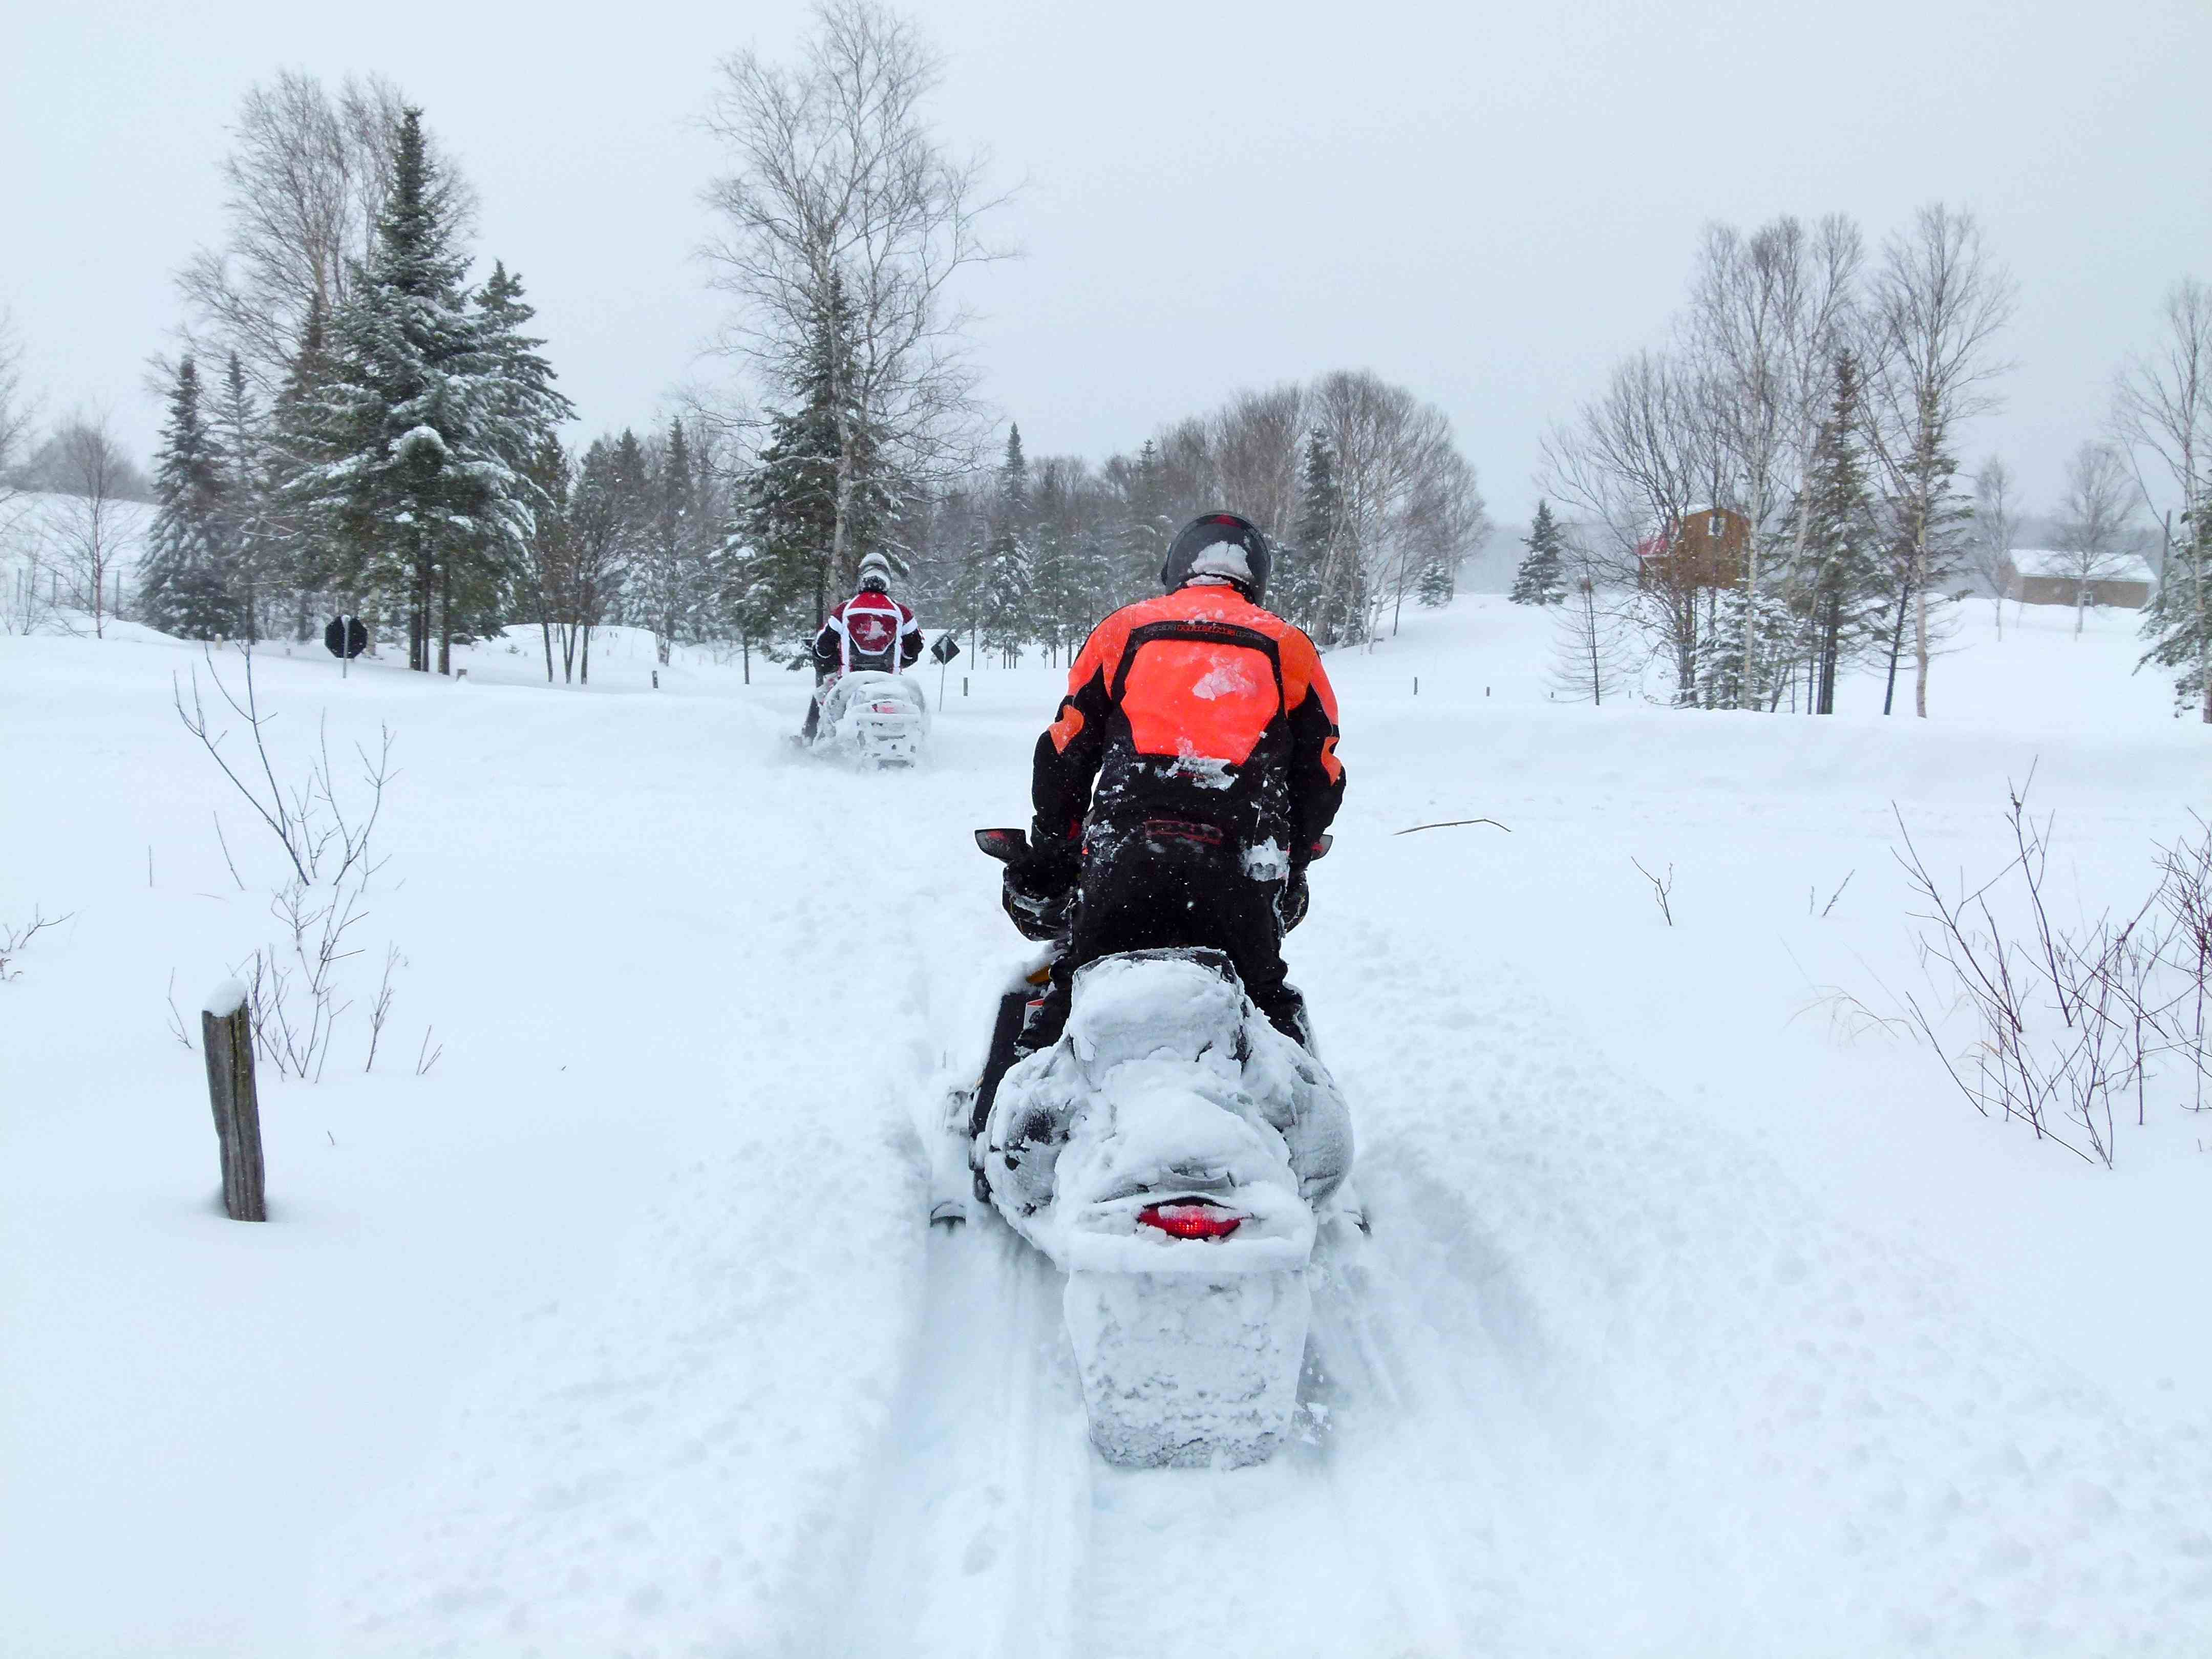 Snowmobile Pathfinding in Heavy Snow